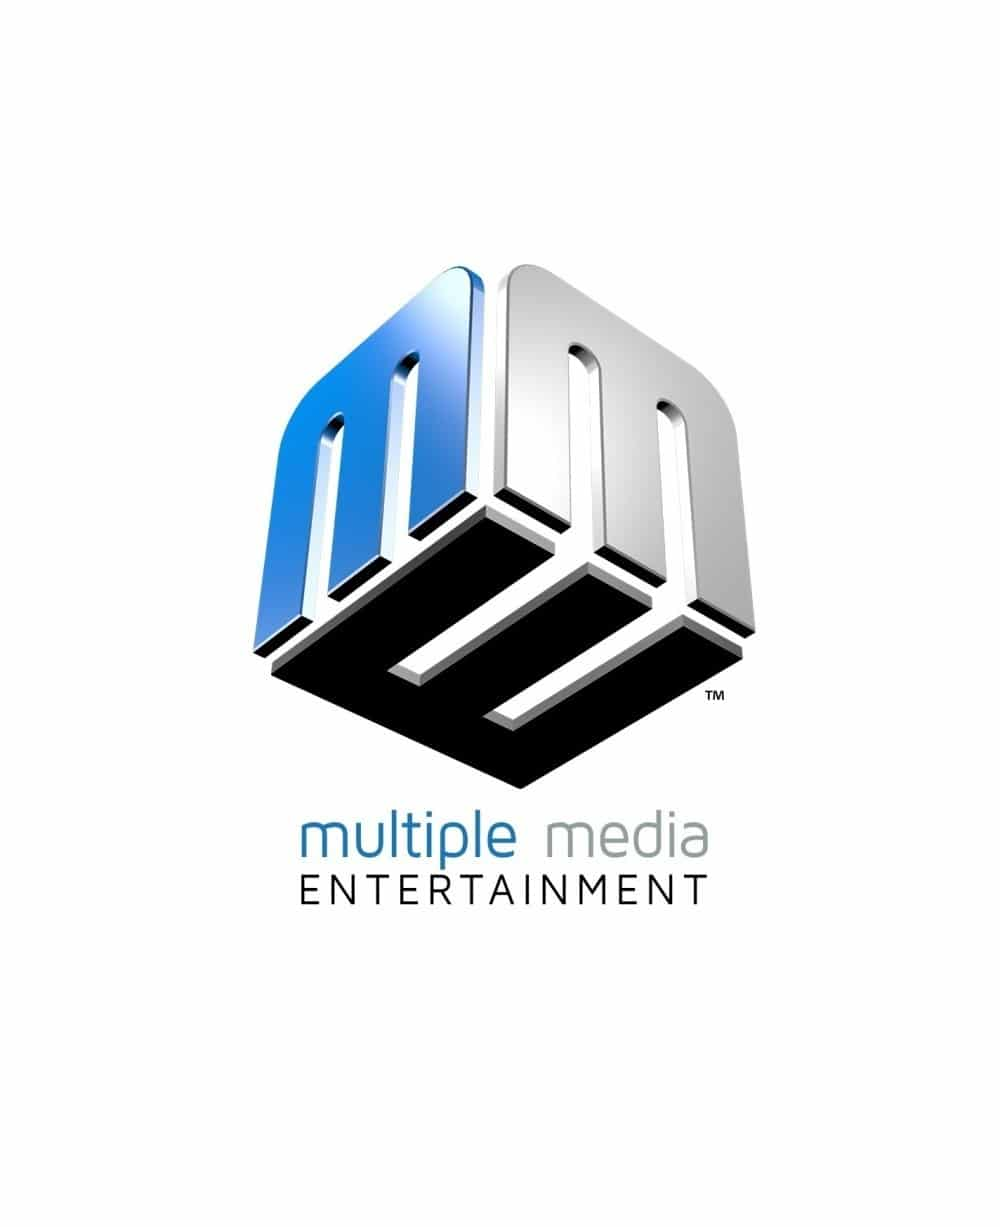 multiple-media-entertainment